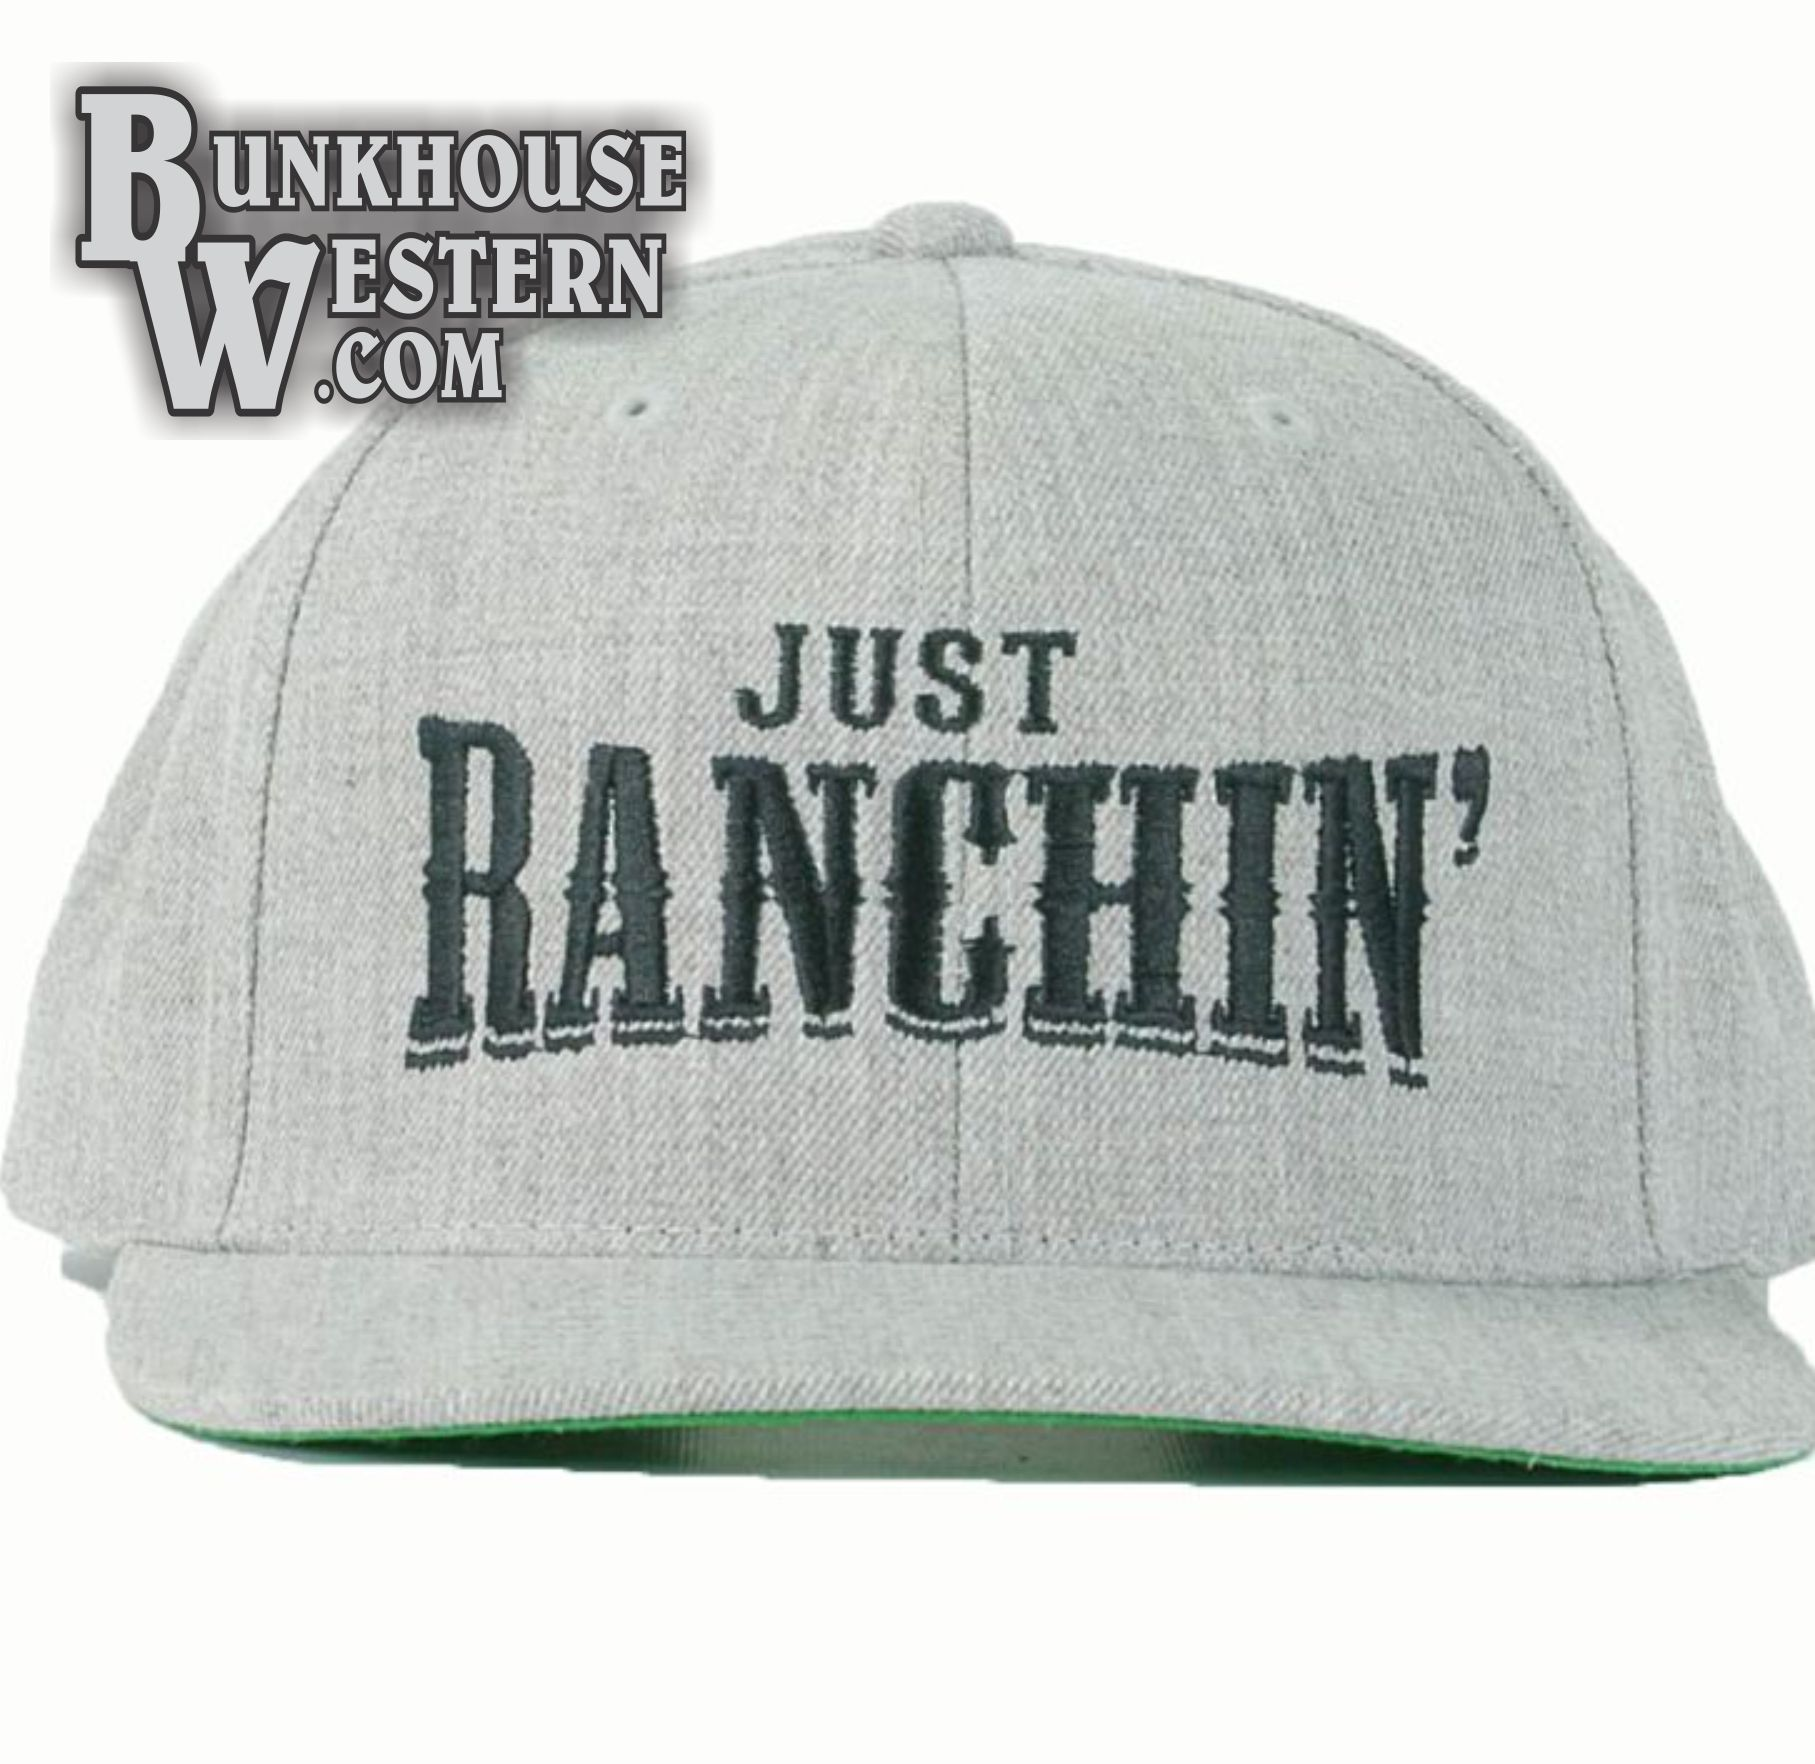 wholesale dealer 90580 78b9f Dale Brisby, Just Ranchin , Gray, Snapback Cap,  31.98